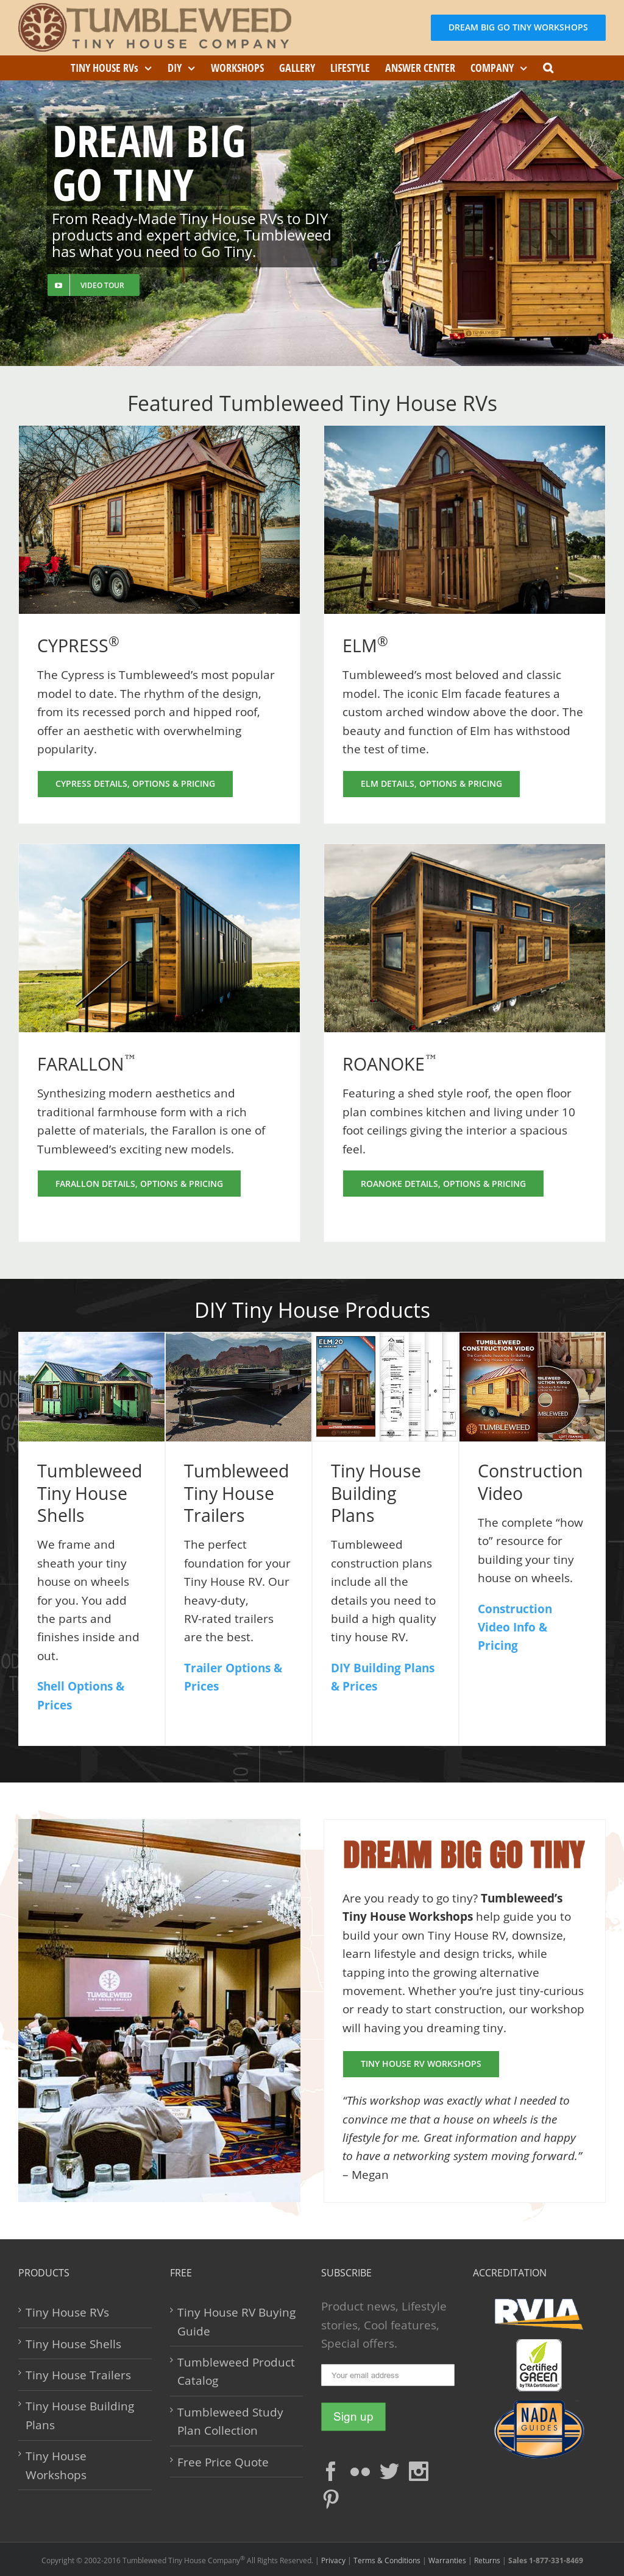 Tumbleweed Tiny House Competitors, Revenue and Employees - Owler